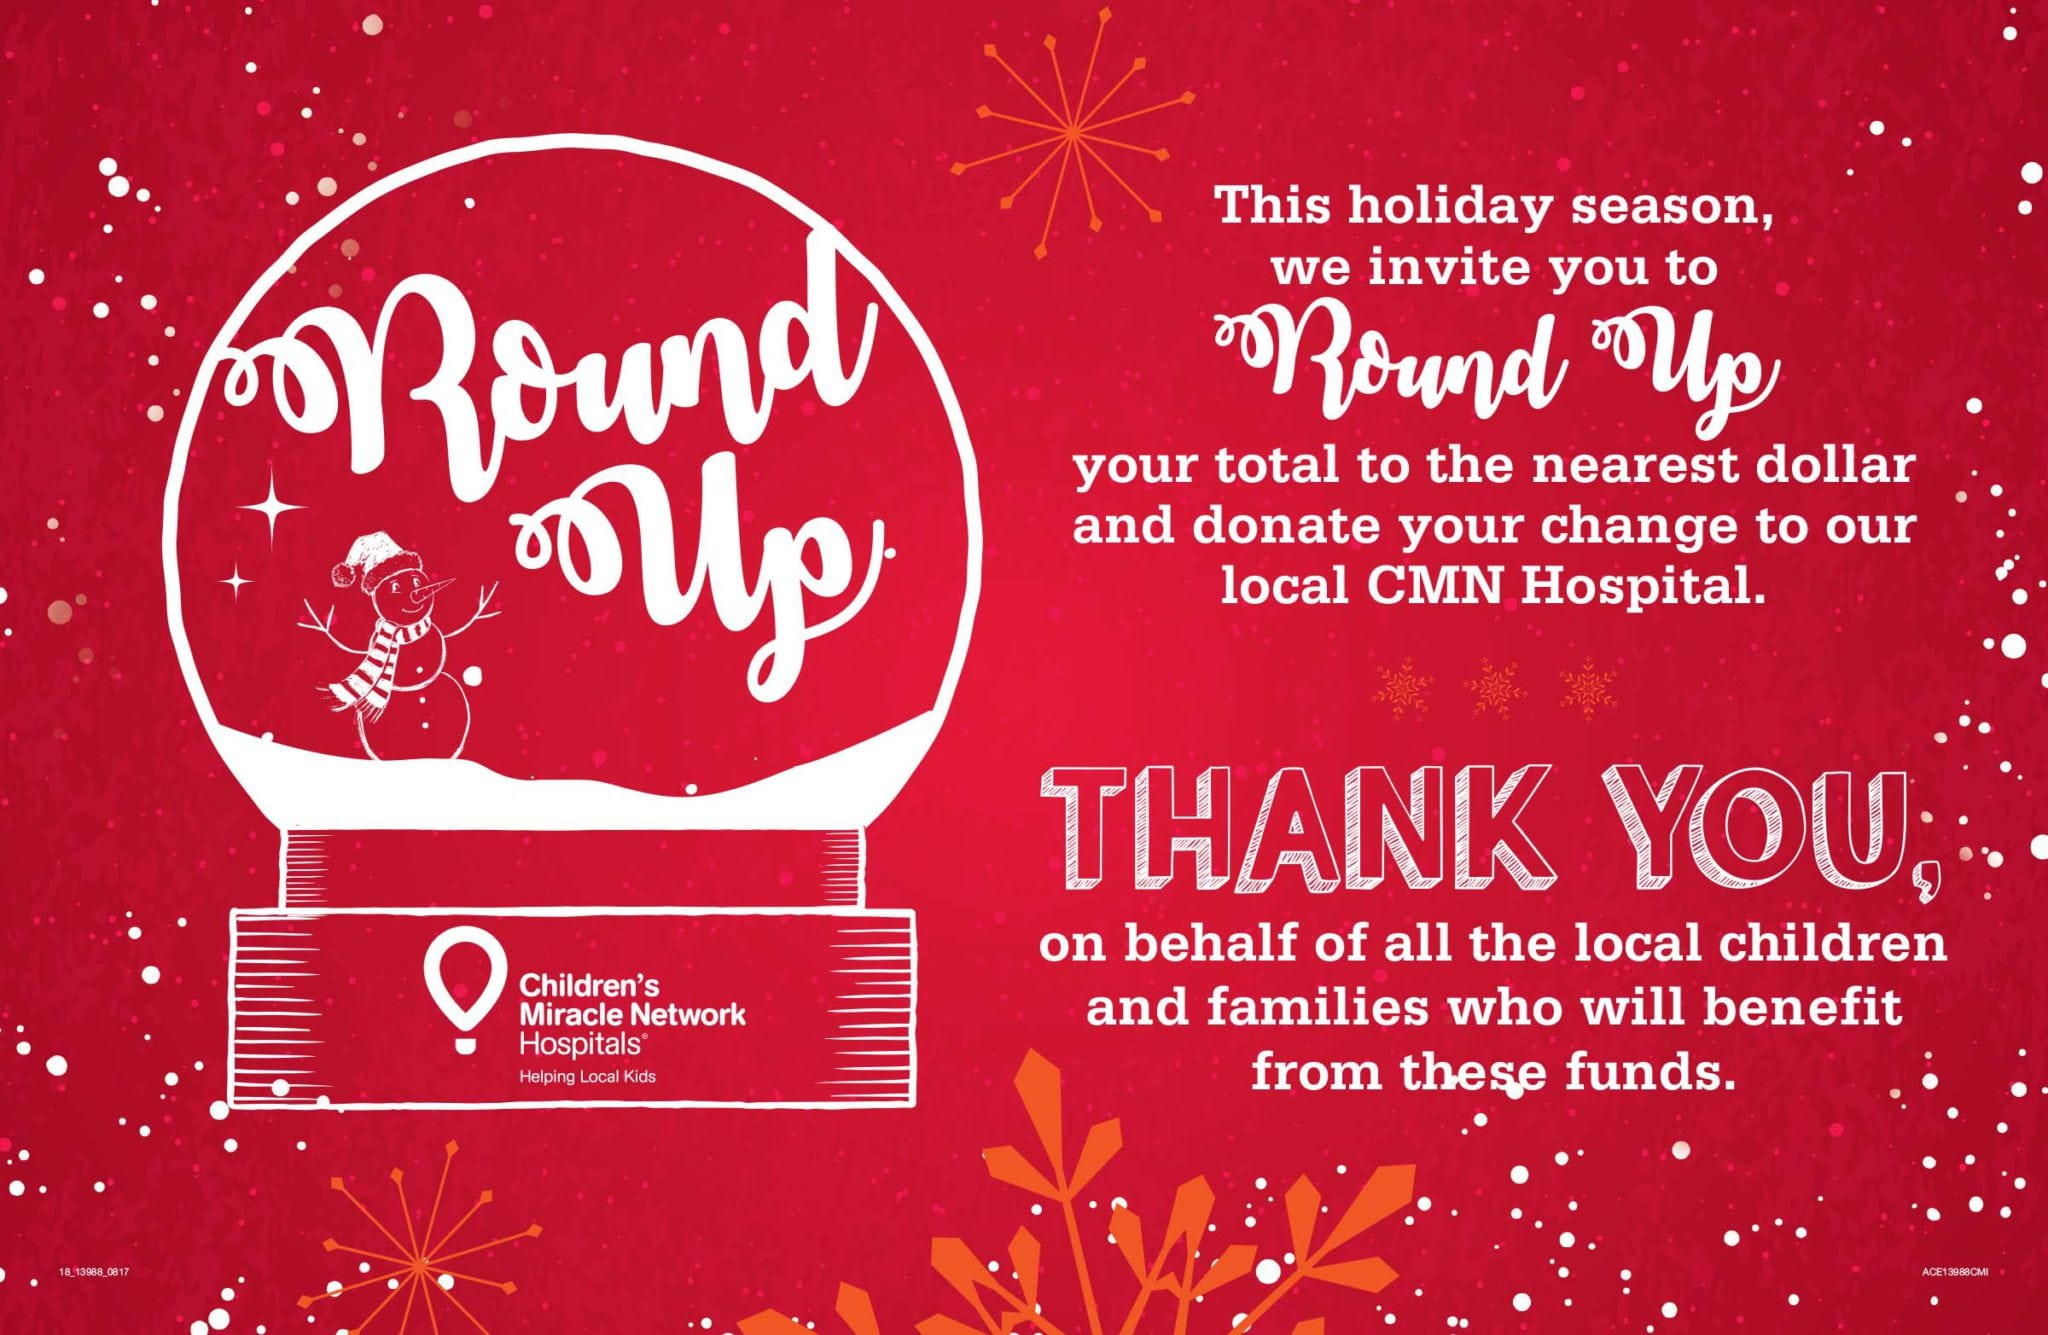 Round up with ace hardware arnold palmer medical center with 17 participating locations throughout central florida our stores are continuously making miracles happen for our young patients and their families kristyandbryce Image collections